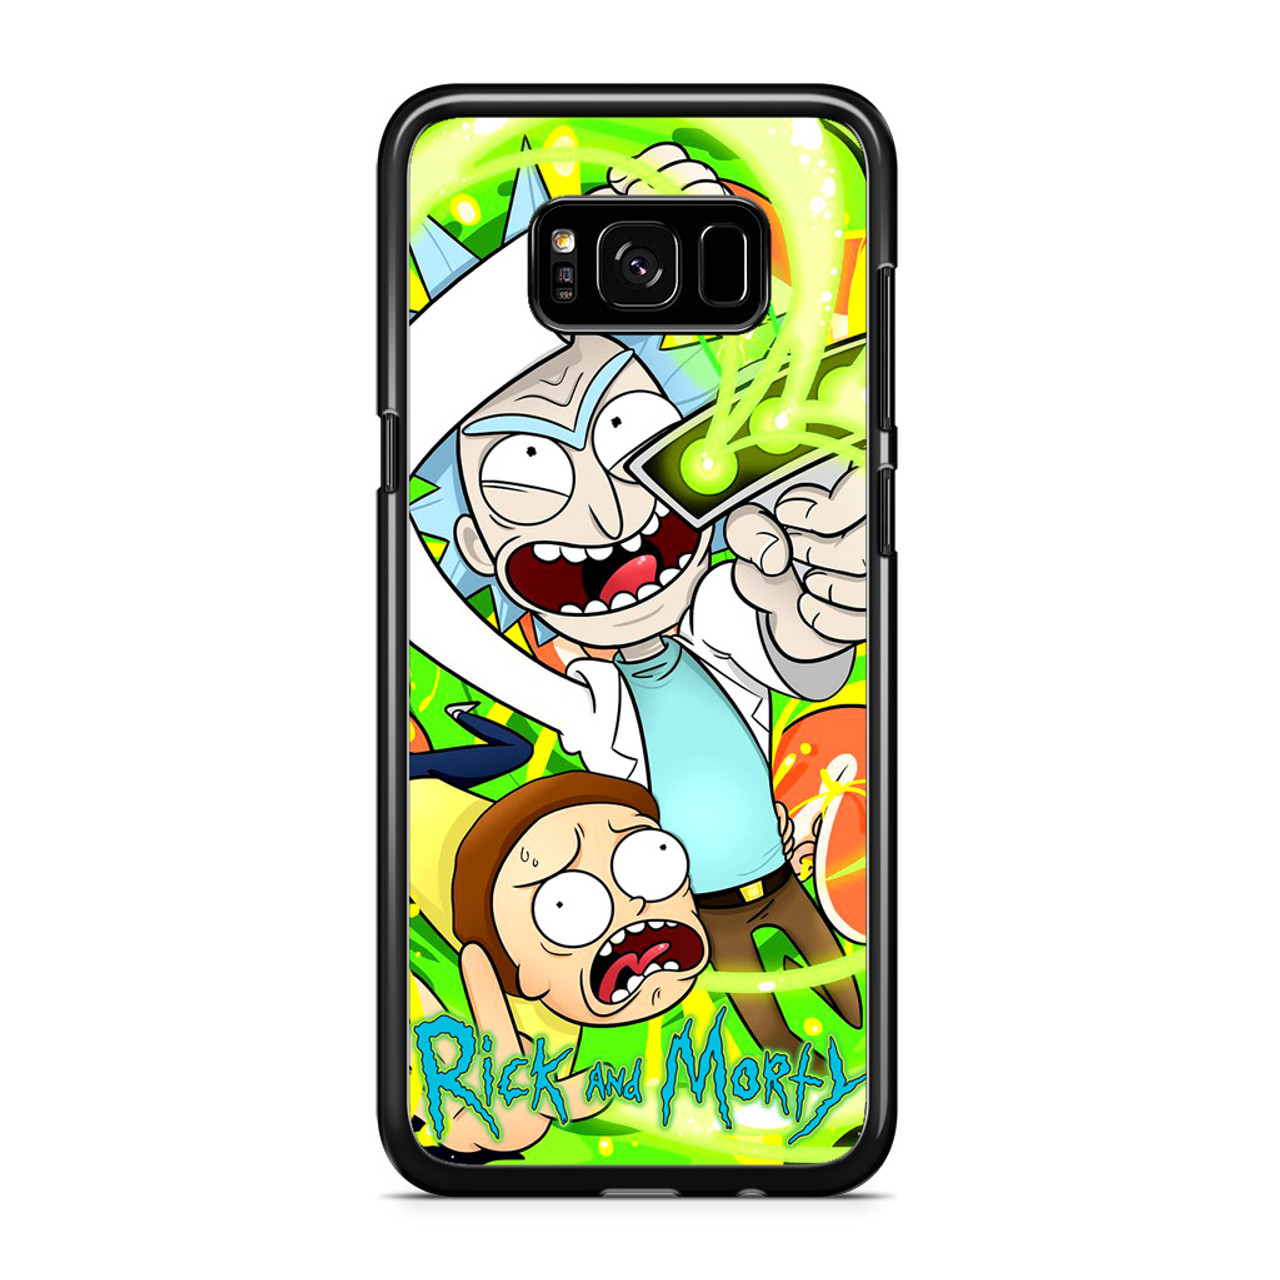 new products f3949 74e8c Rick And Morty 3 Samsung Galaxy S8 Plus Case